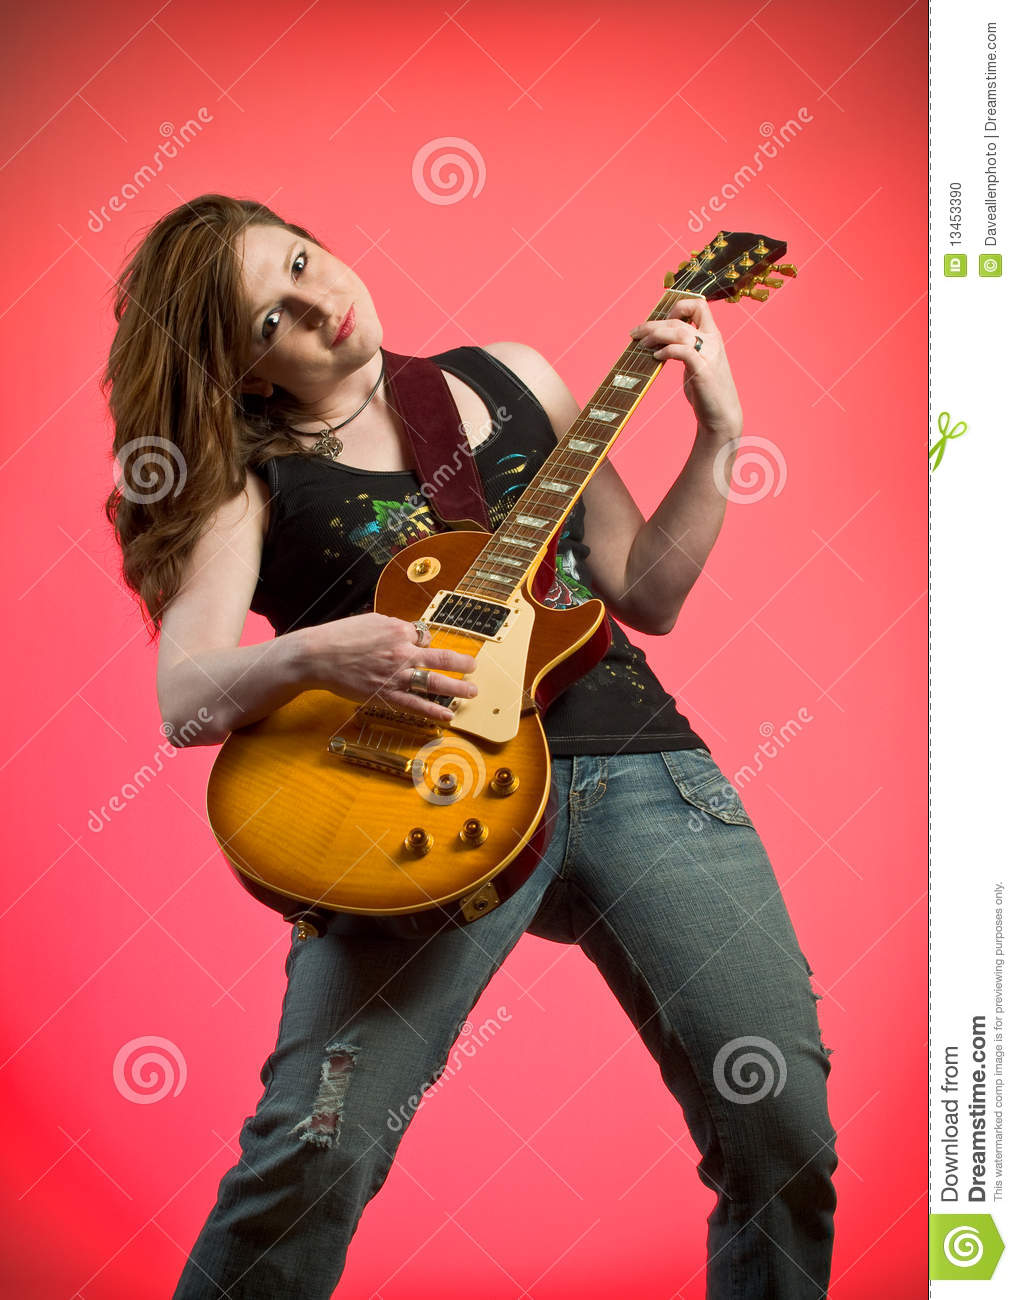 image Guitars and dildos for teen